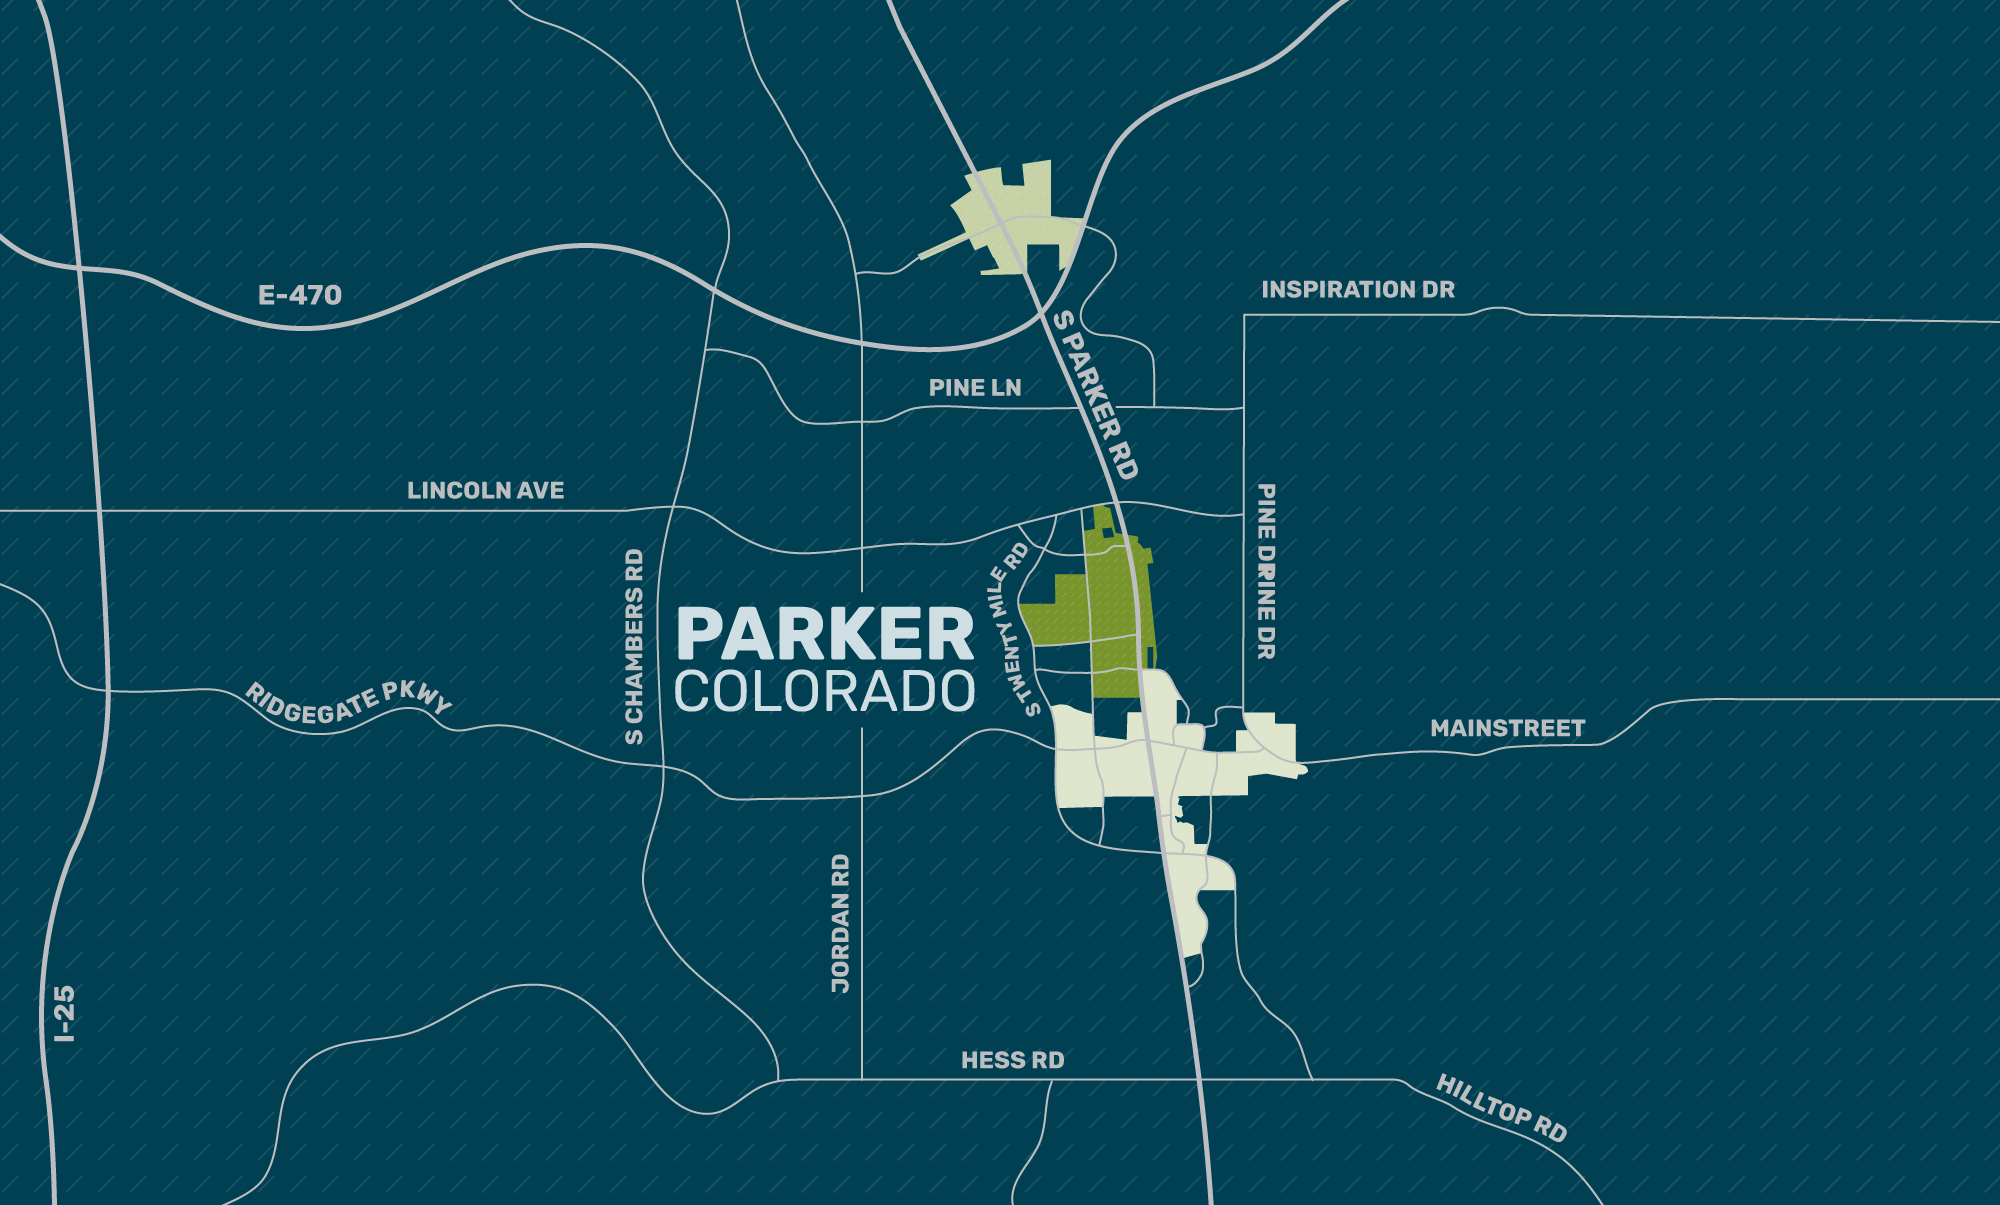 MAPS OF ALL AREAS (.pdf & .jpg)   Includes comprehensive map with all areas as well as specific Parker Central, Parker Road and Cottonwood maps